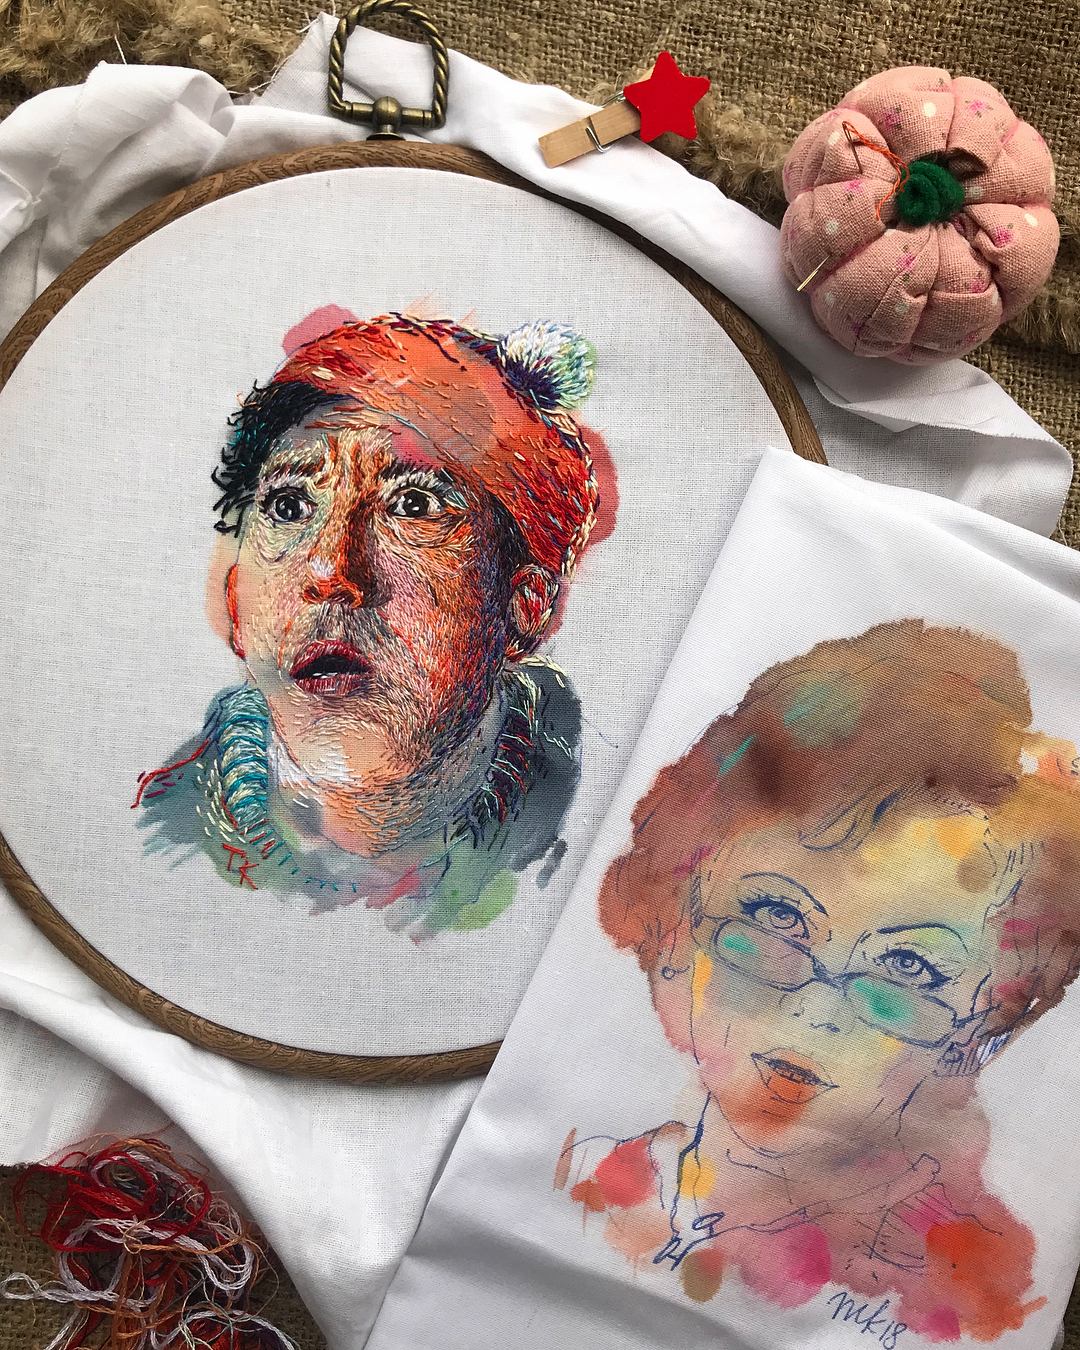 Embroidery Stitched Atop Carefree Watercolor Washes is Portraiture Reimagined